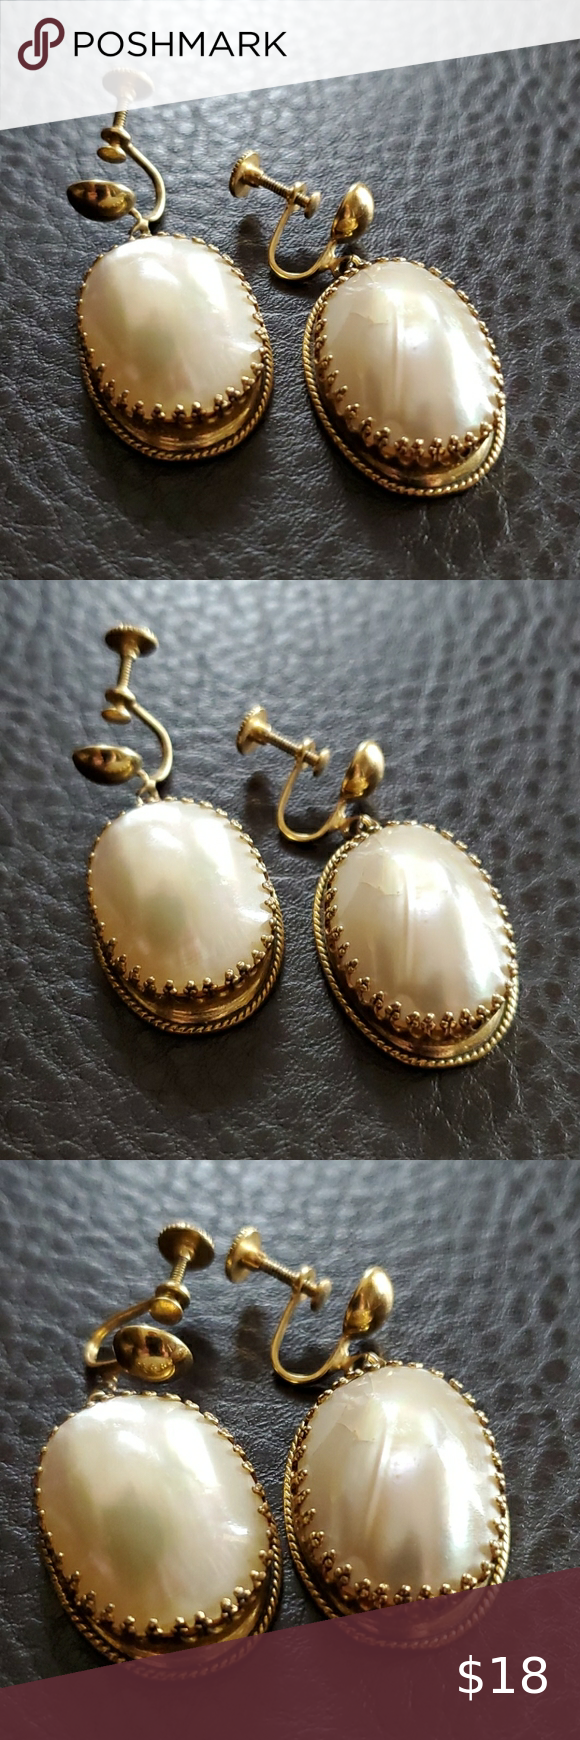 Pair gold tone with faux pearls womens earrings